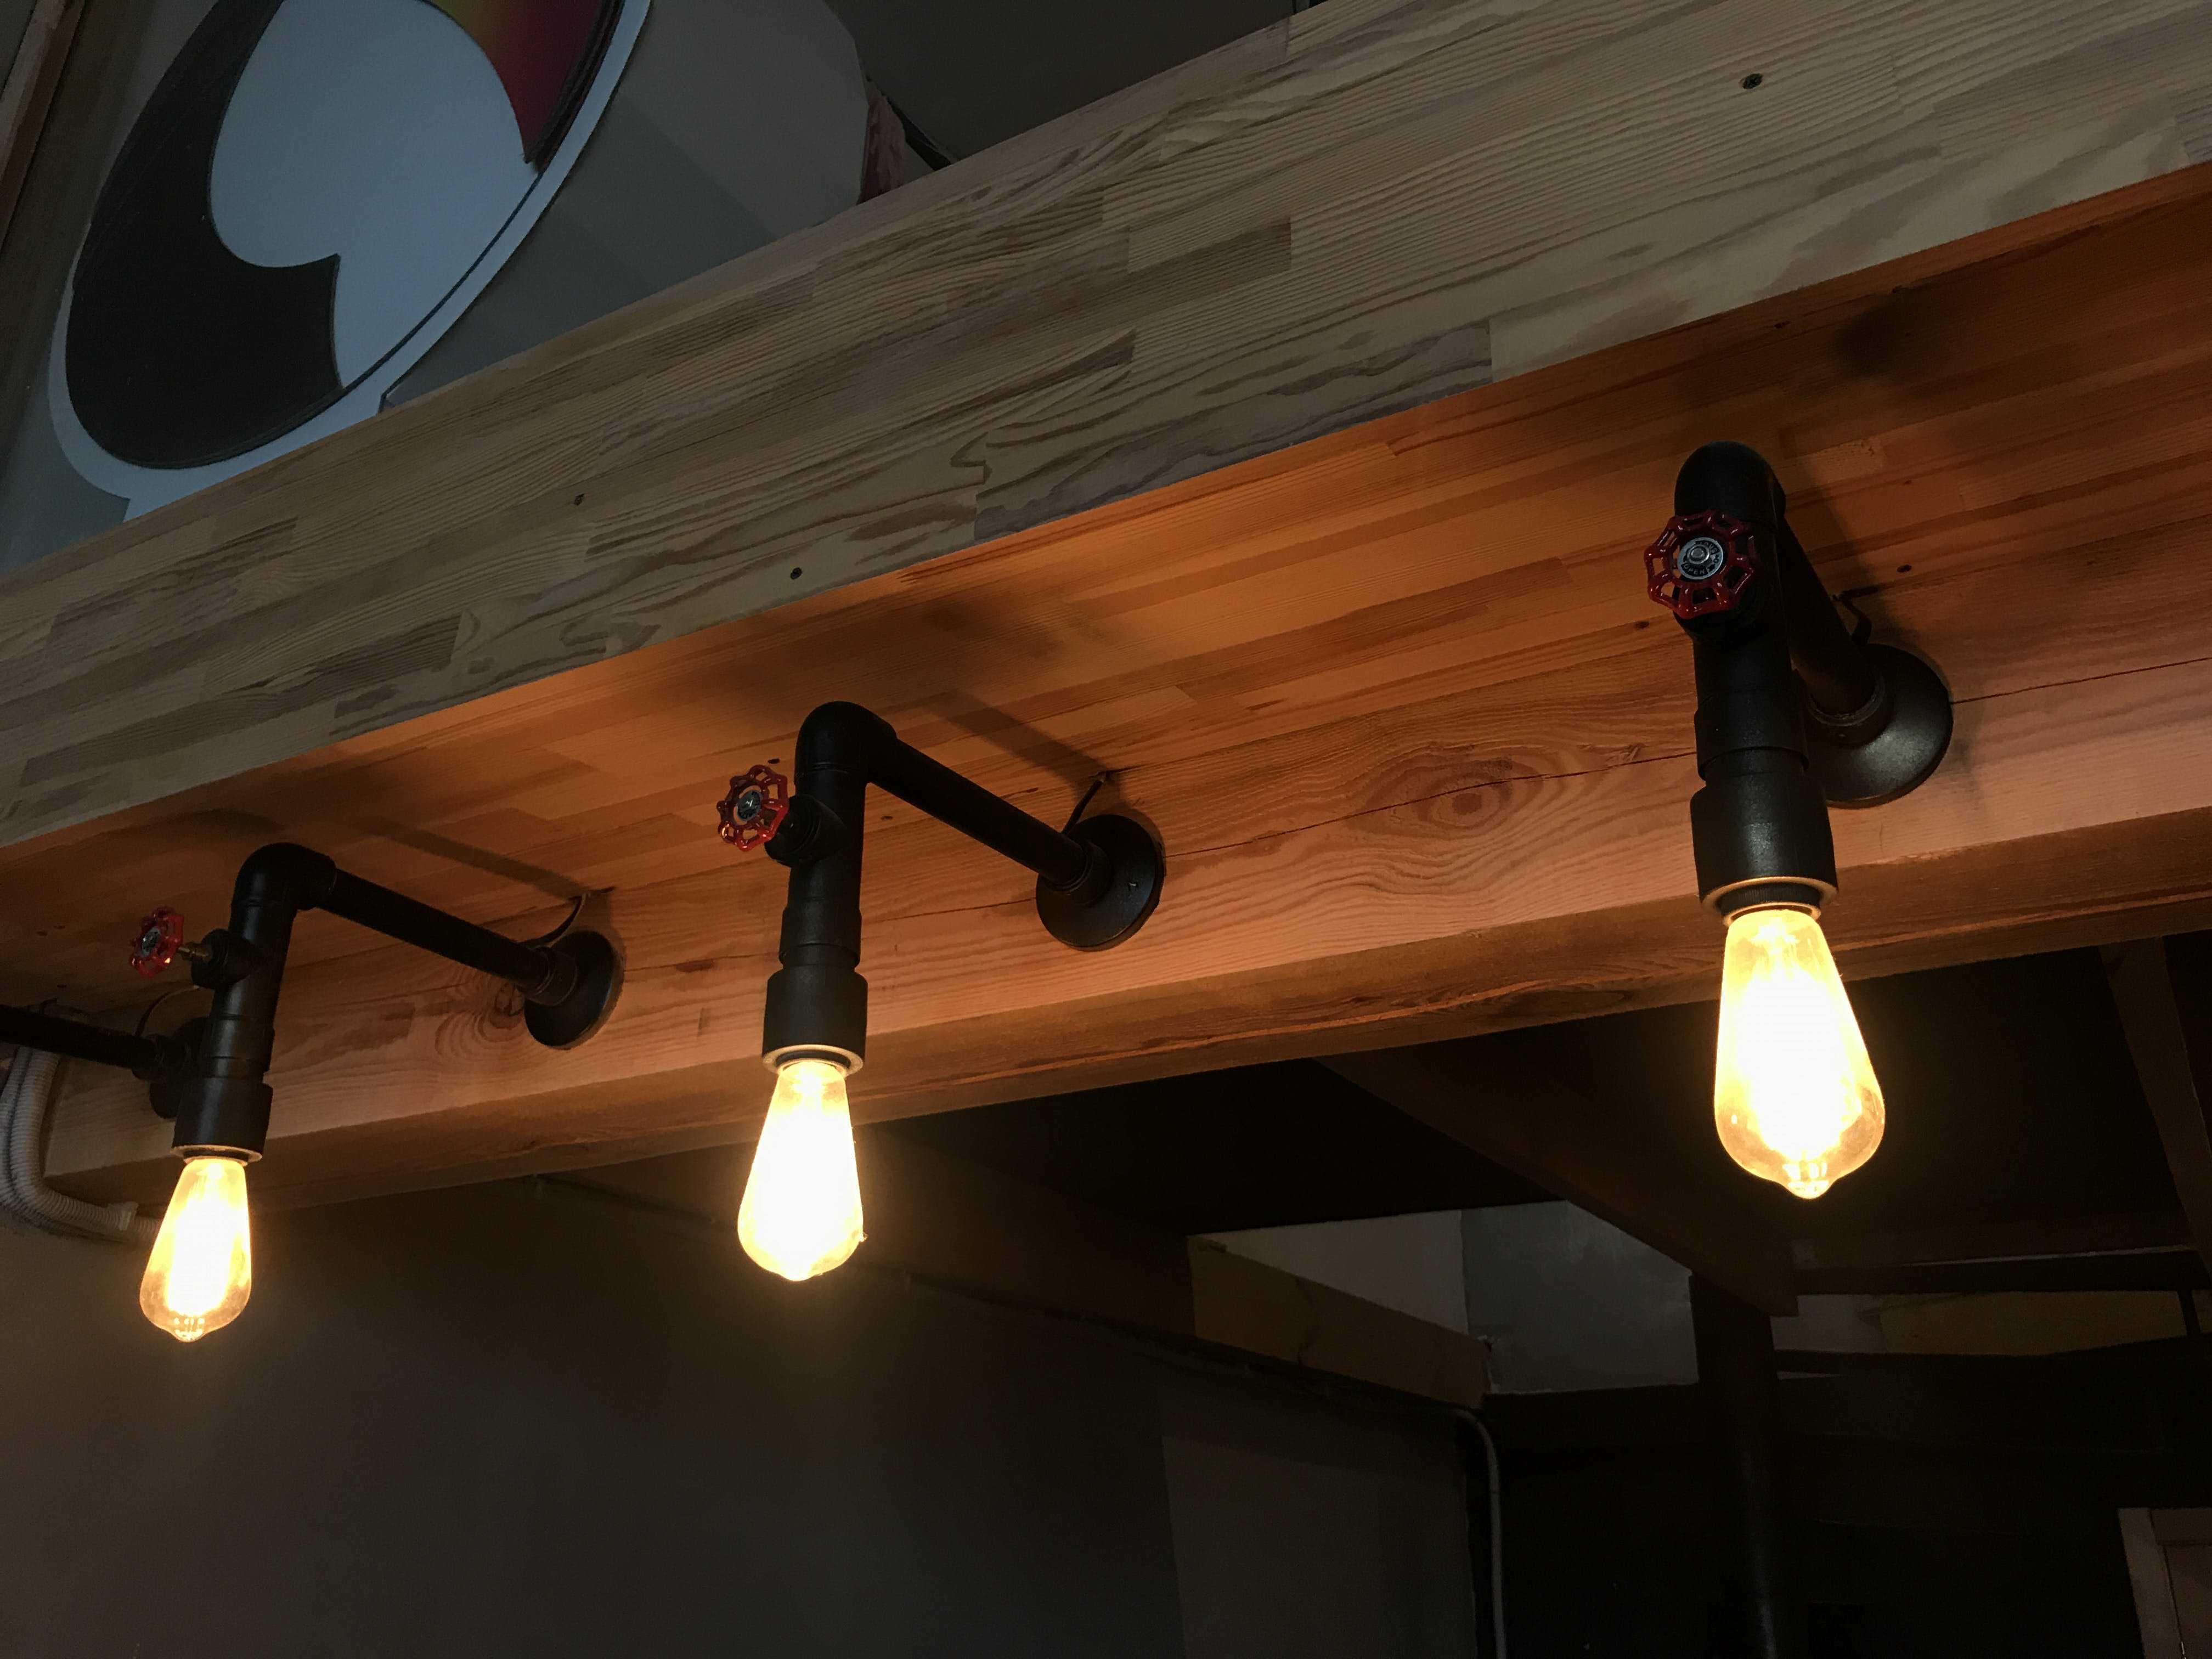 Free stock photo of lamps, loft, red valve, tubes